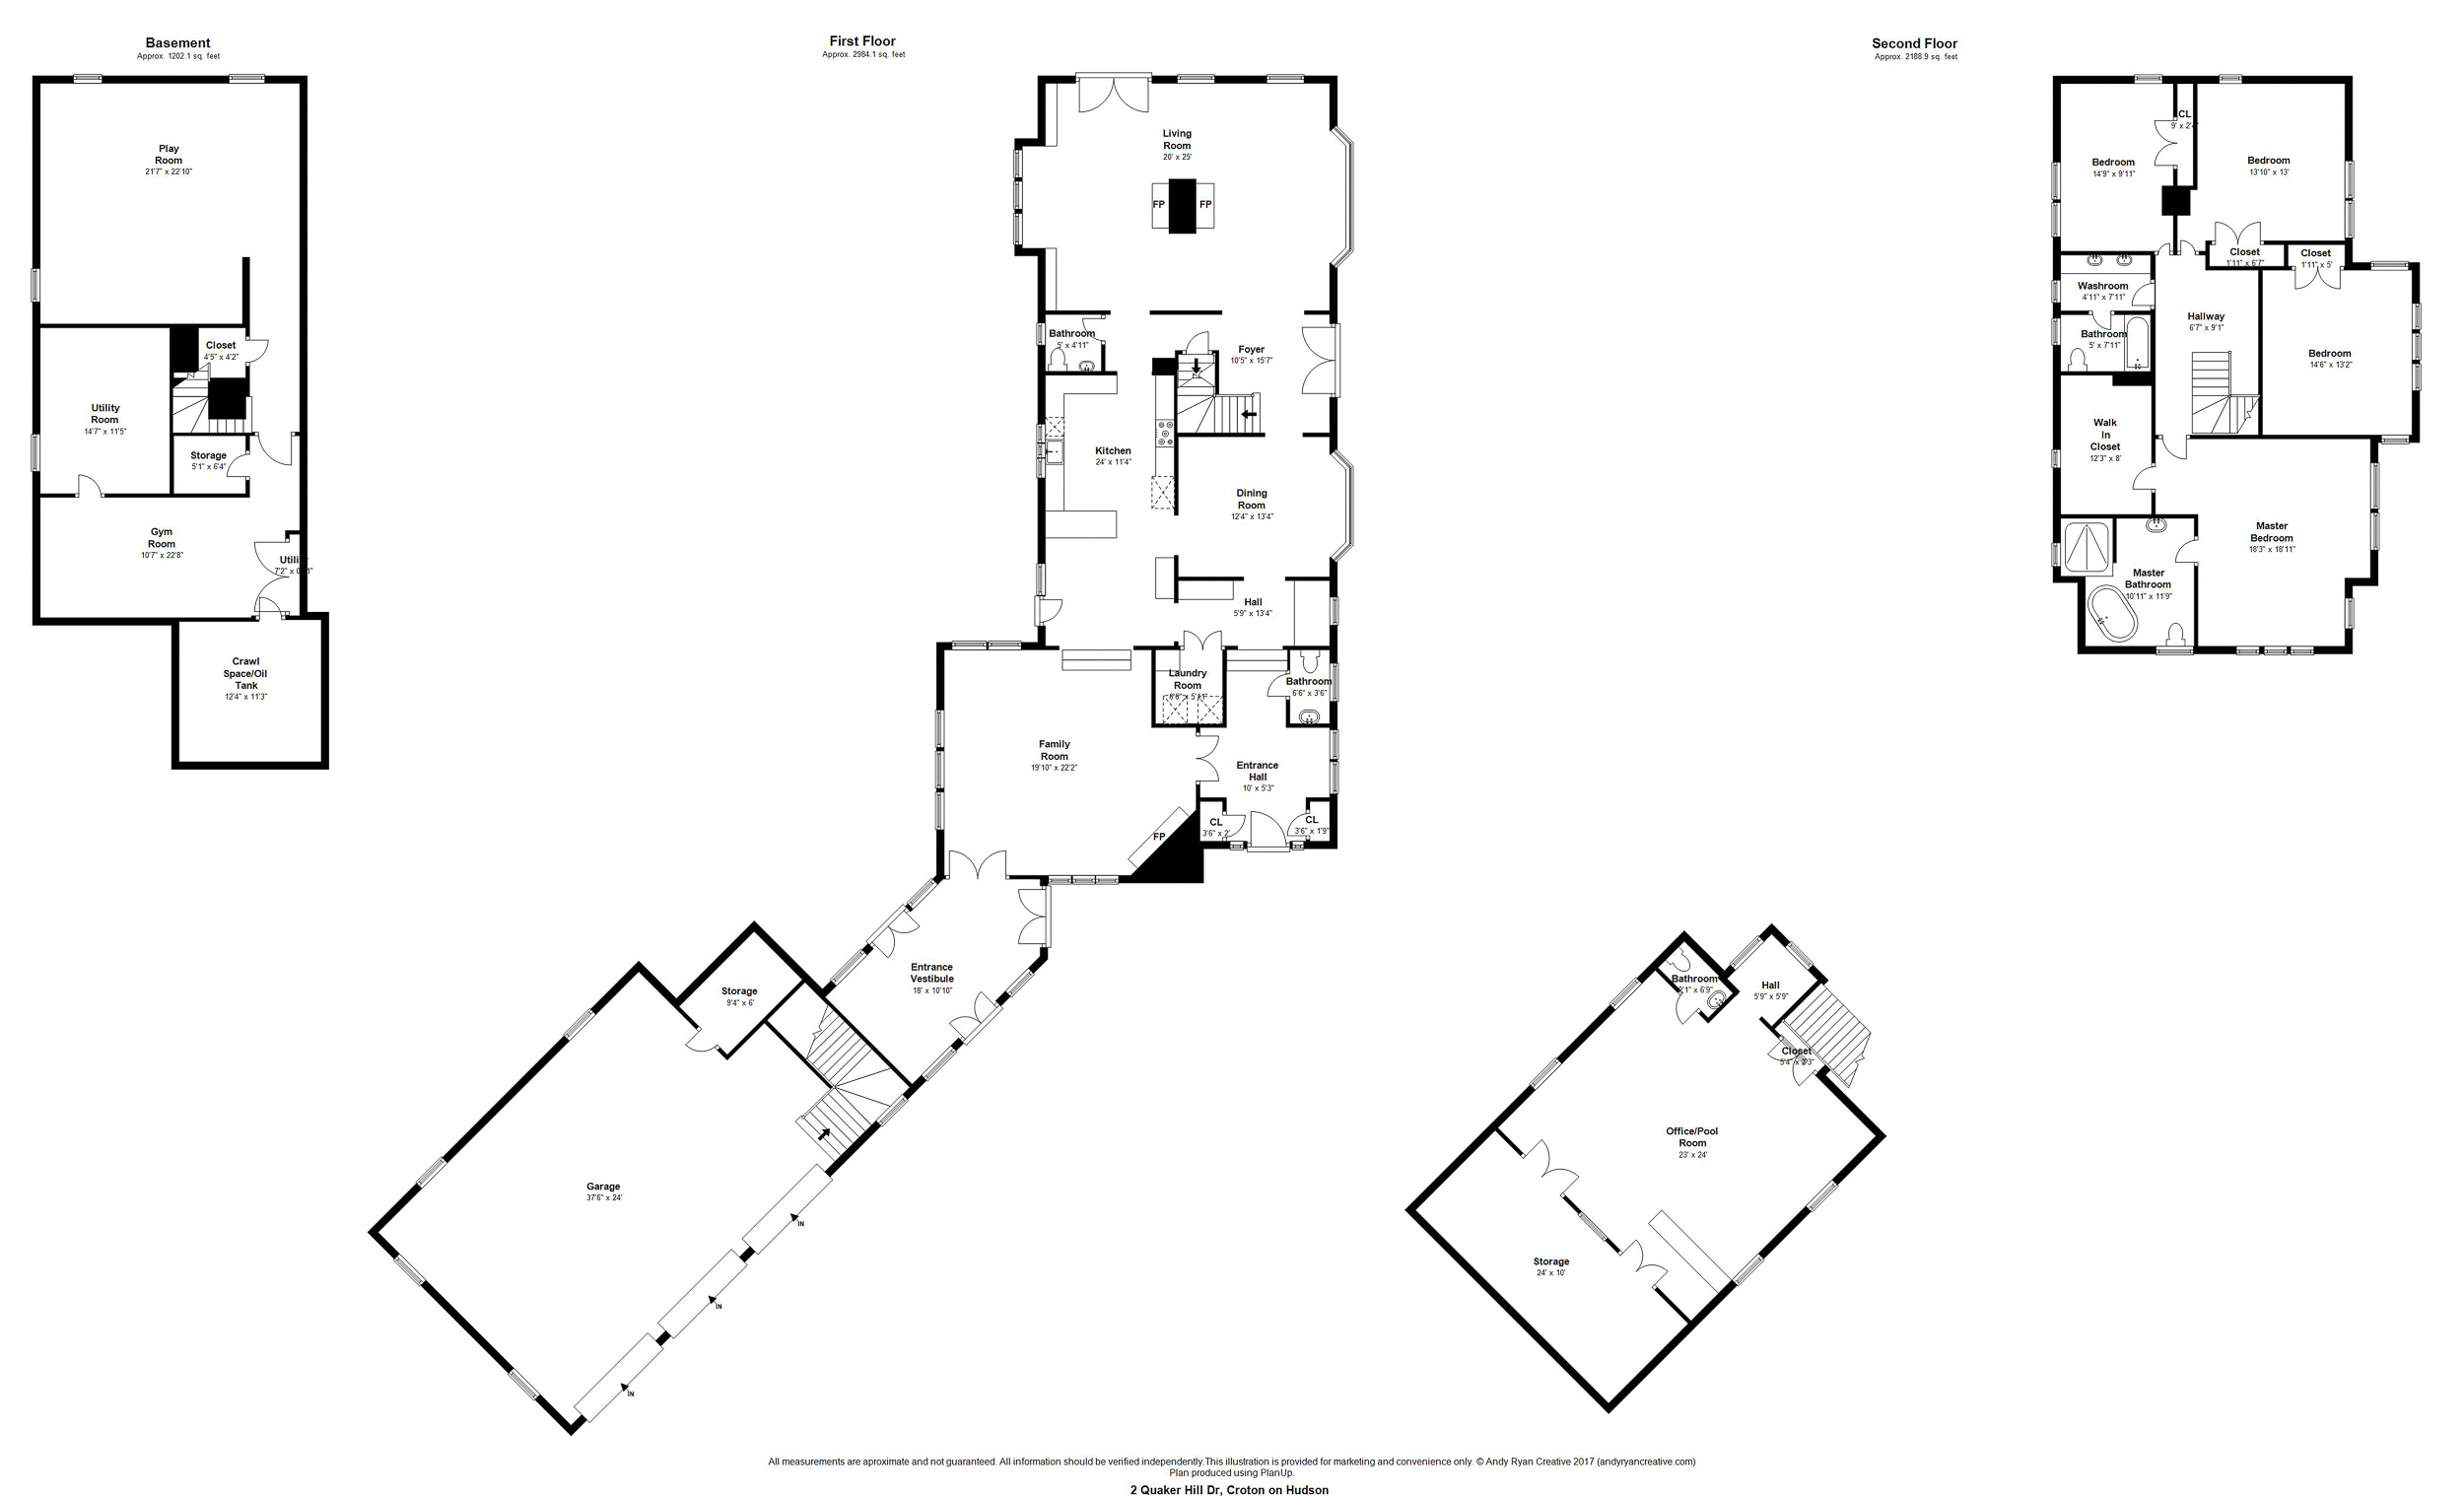 A real estate floor plan. Floor Plans by Andy Ryan Photographer ( www.andyryanphotographer.com )